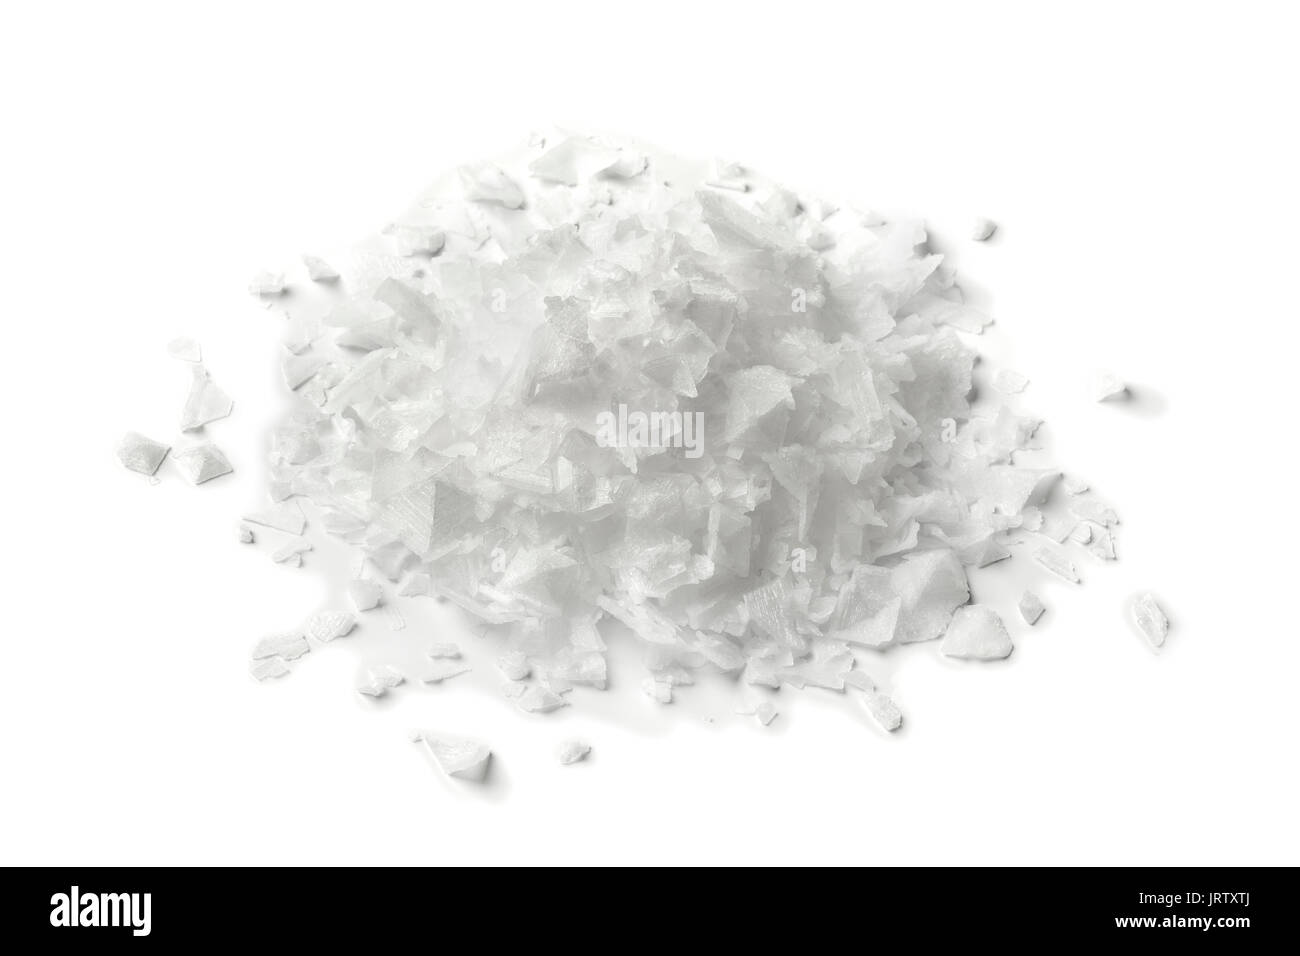 Heap of salt flakes on white background - Stock Image